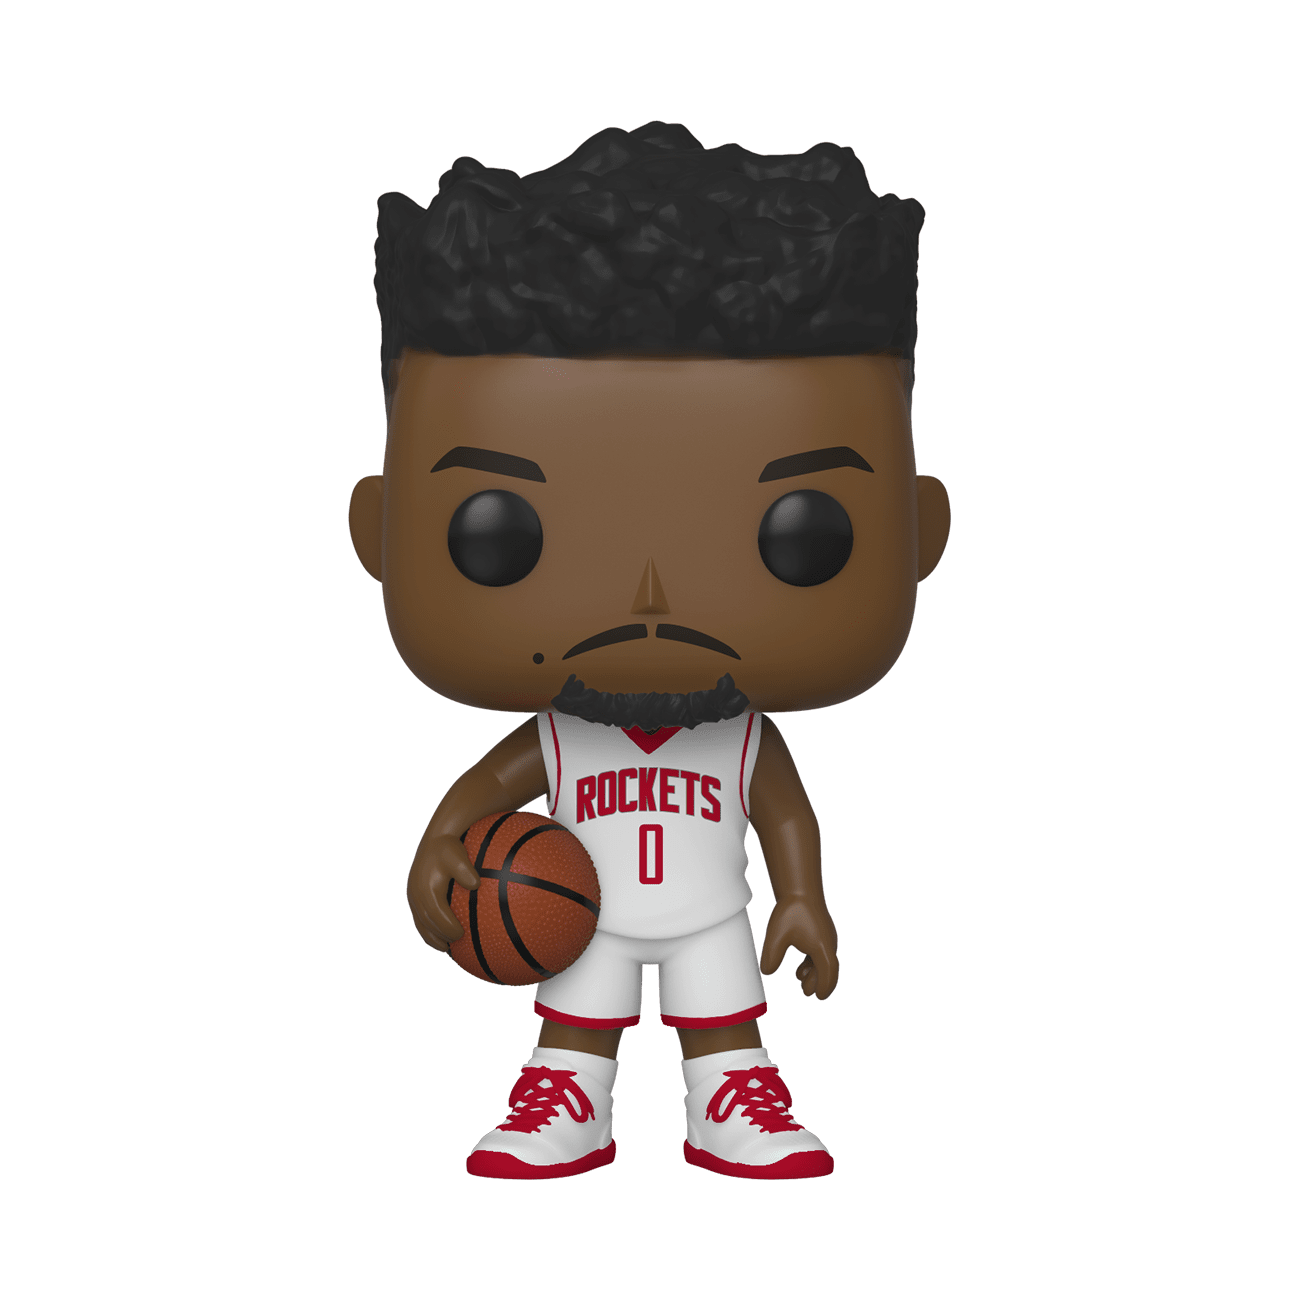 PRE-ORDER NBA: Rockets Russell Westbrook  POP! Vinyl Figure